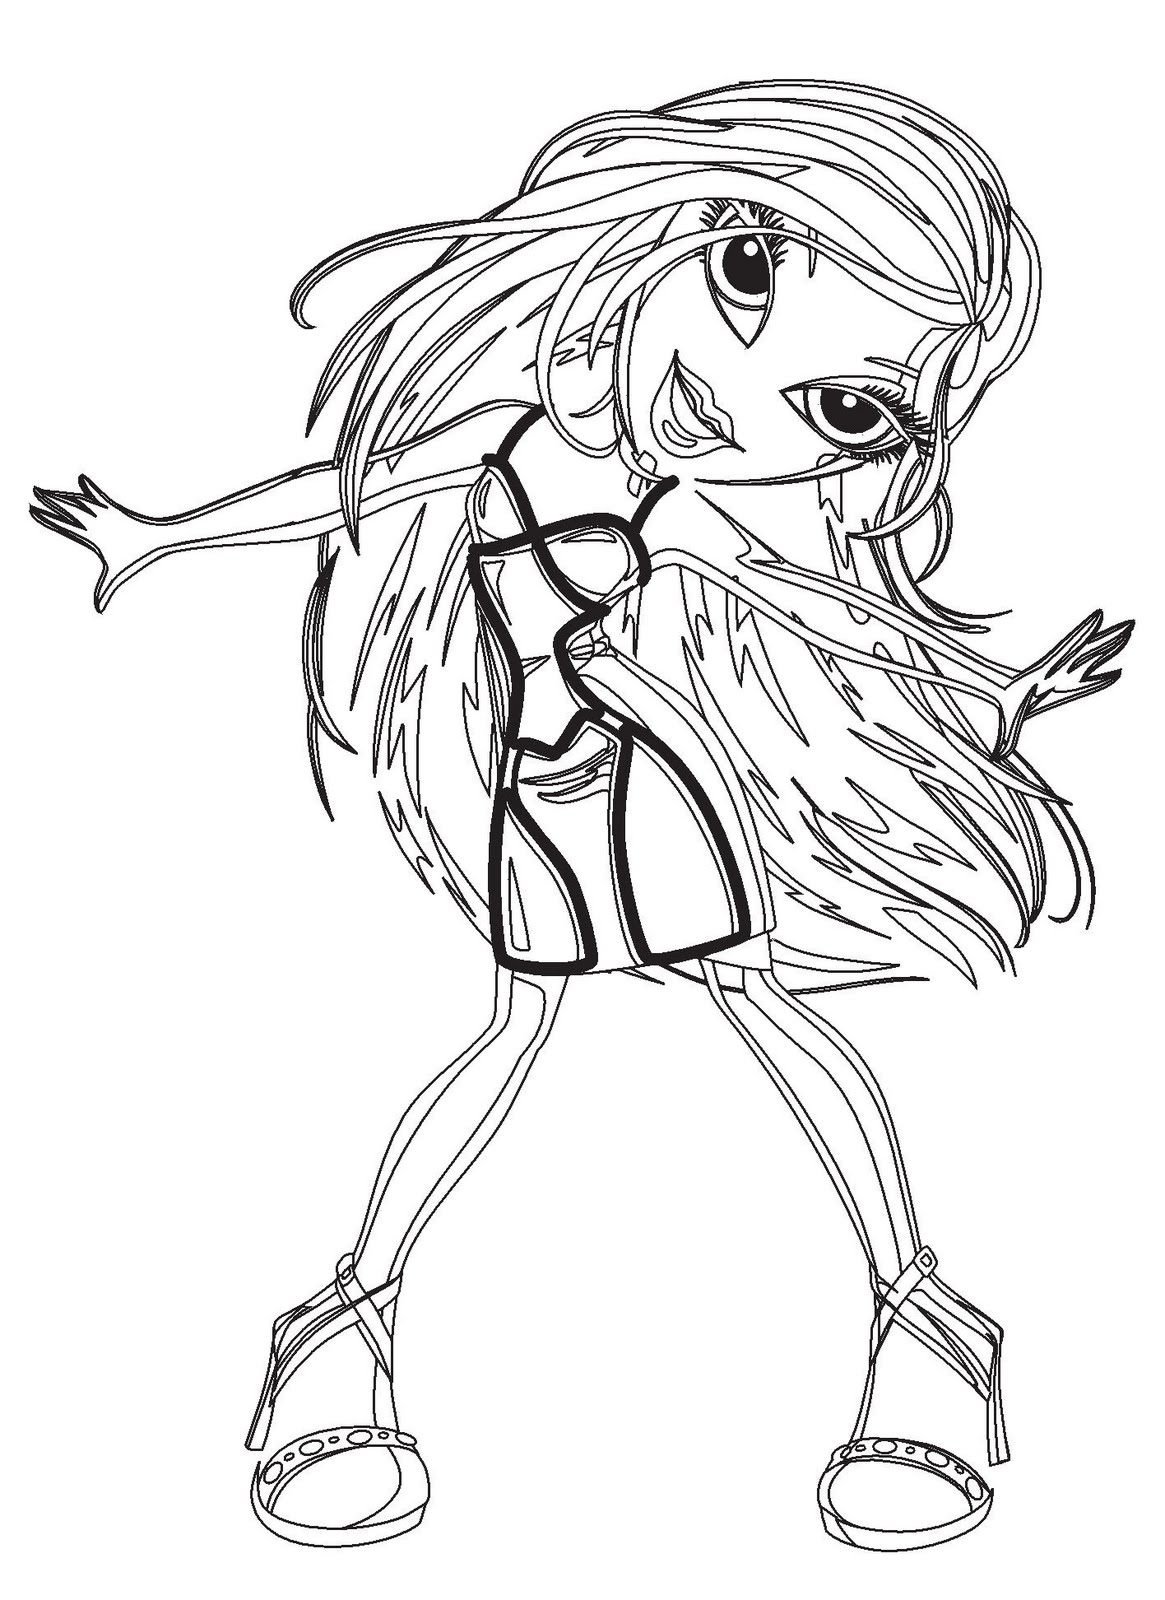 Colorful Cartoon Coloring Pages: Funky And Fun Bratz Printables avec Bratz Dessin